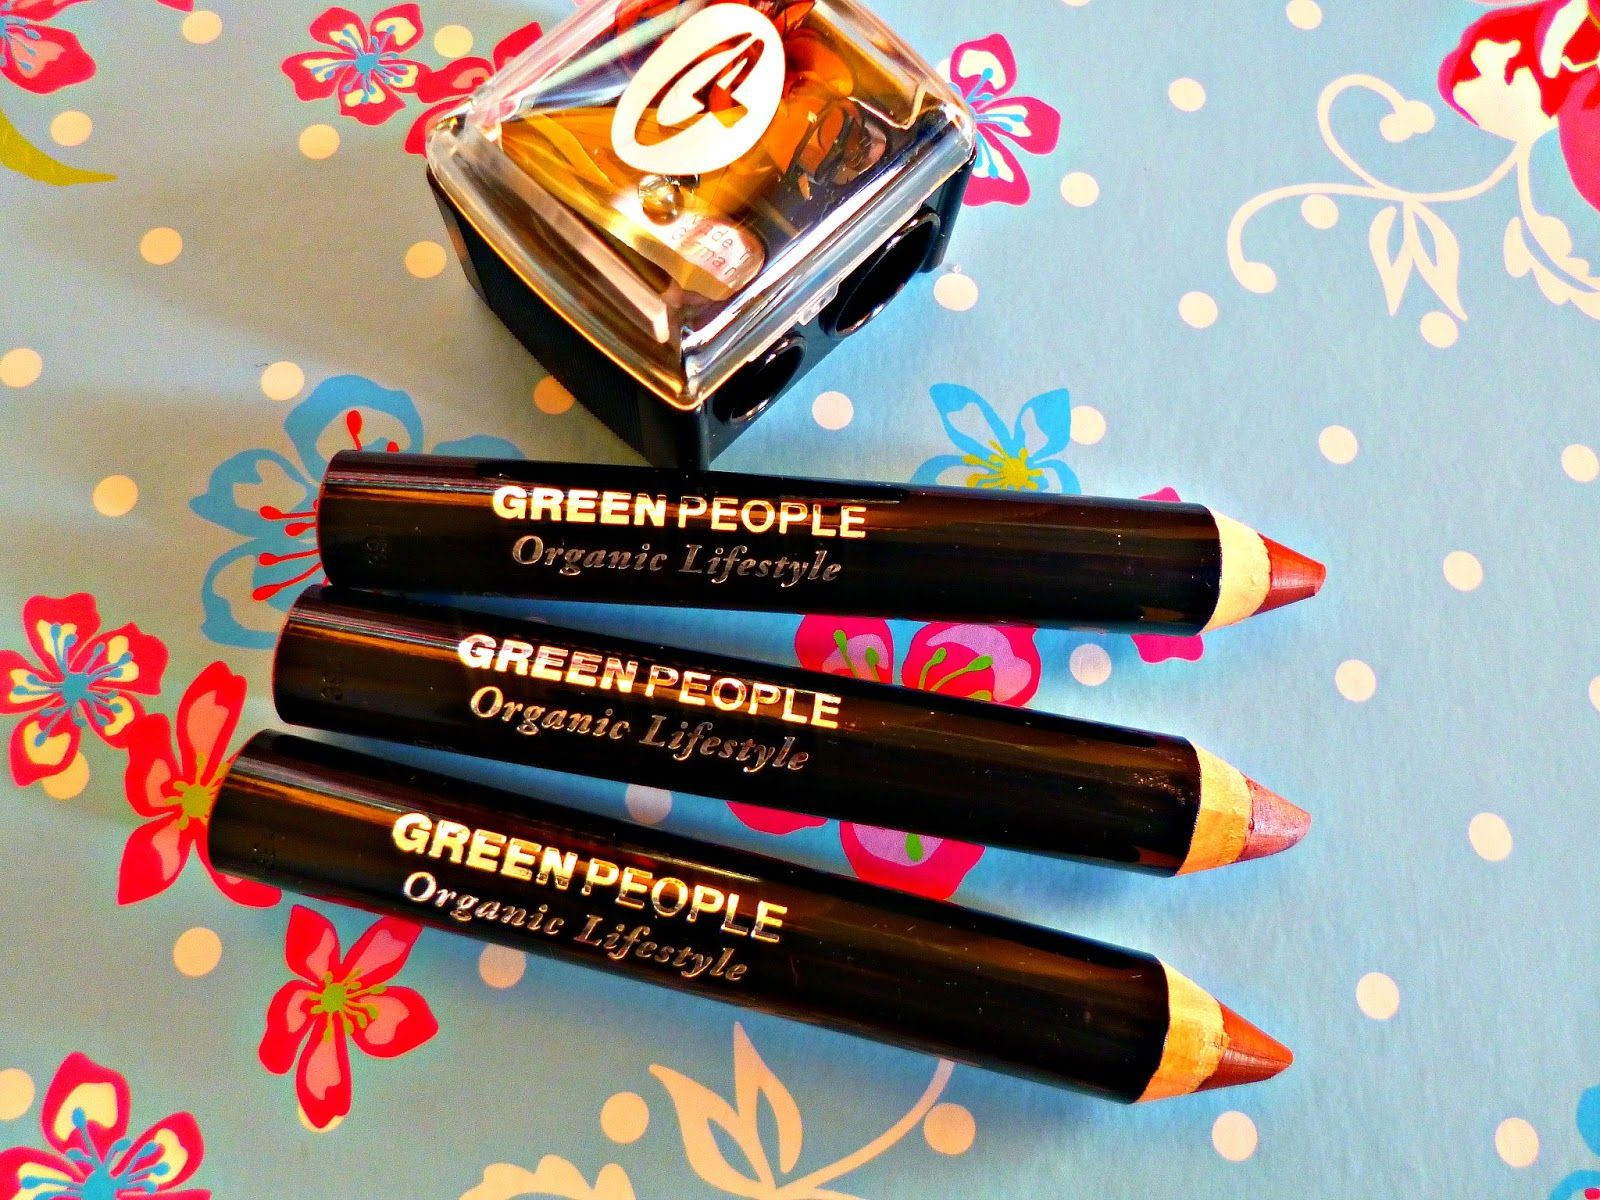 New in Green People instant definition lip crayons and